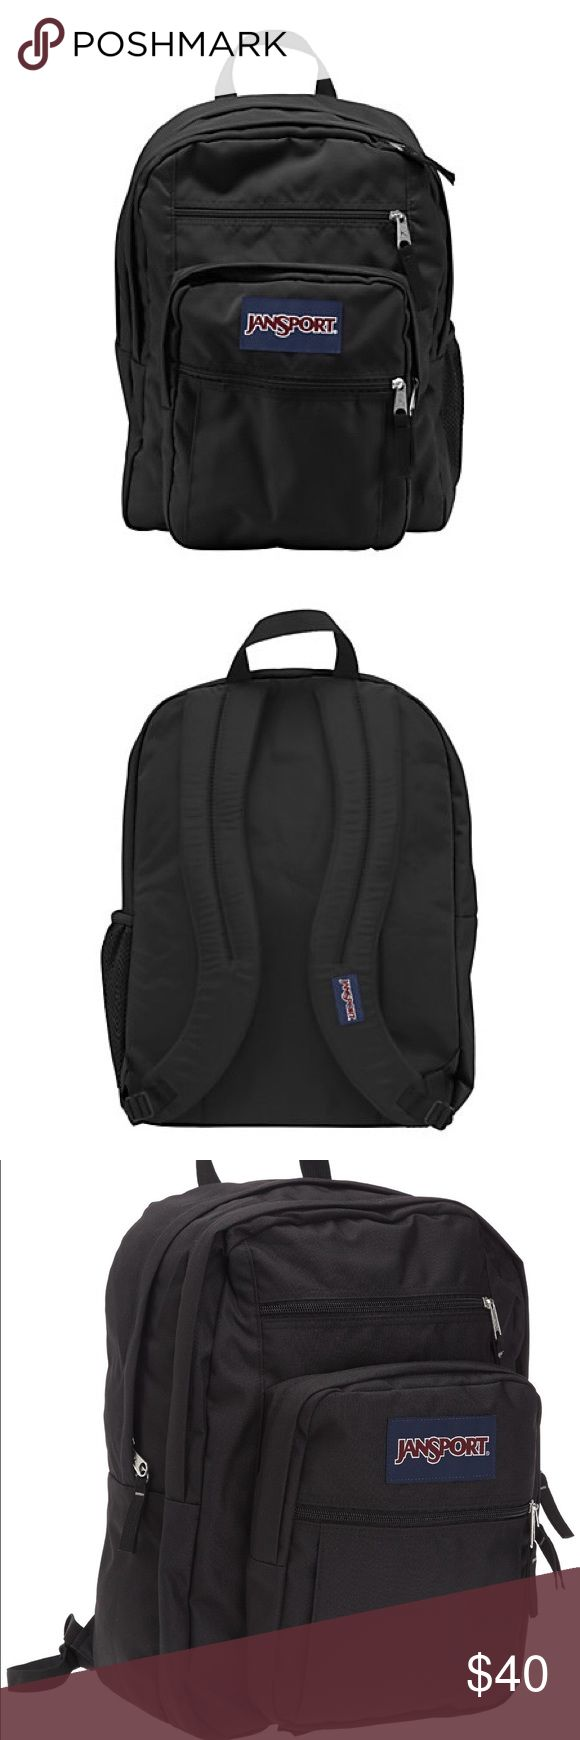 Black Jansport Big Student Backpack 📓 Two spacious main compartments to store large items such as textbooks Front utility pocket with organizer to store pens and pencils Pleated front stash pocket to keep small personal items Zippered front stash pocket for easy access Side water bottle pocket keeps you hydrated Ergonomic S-curved shoulder straps for a contoured fit Web haul handle for easy lifting Best Uses: School, Sports Number of Pockets: 5 Weight: 1 lb., 8 oz. Volume: 34 L Dimensions…